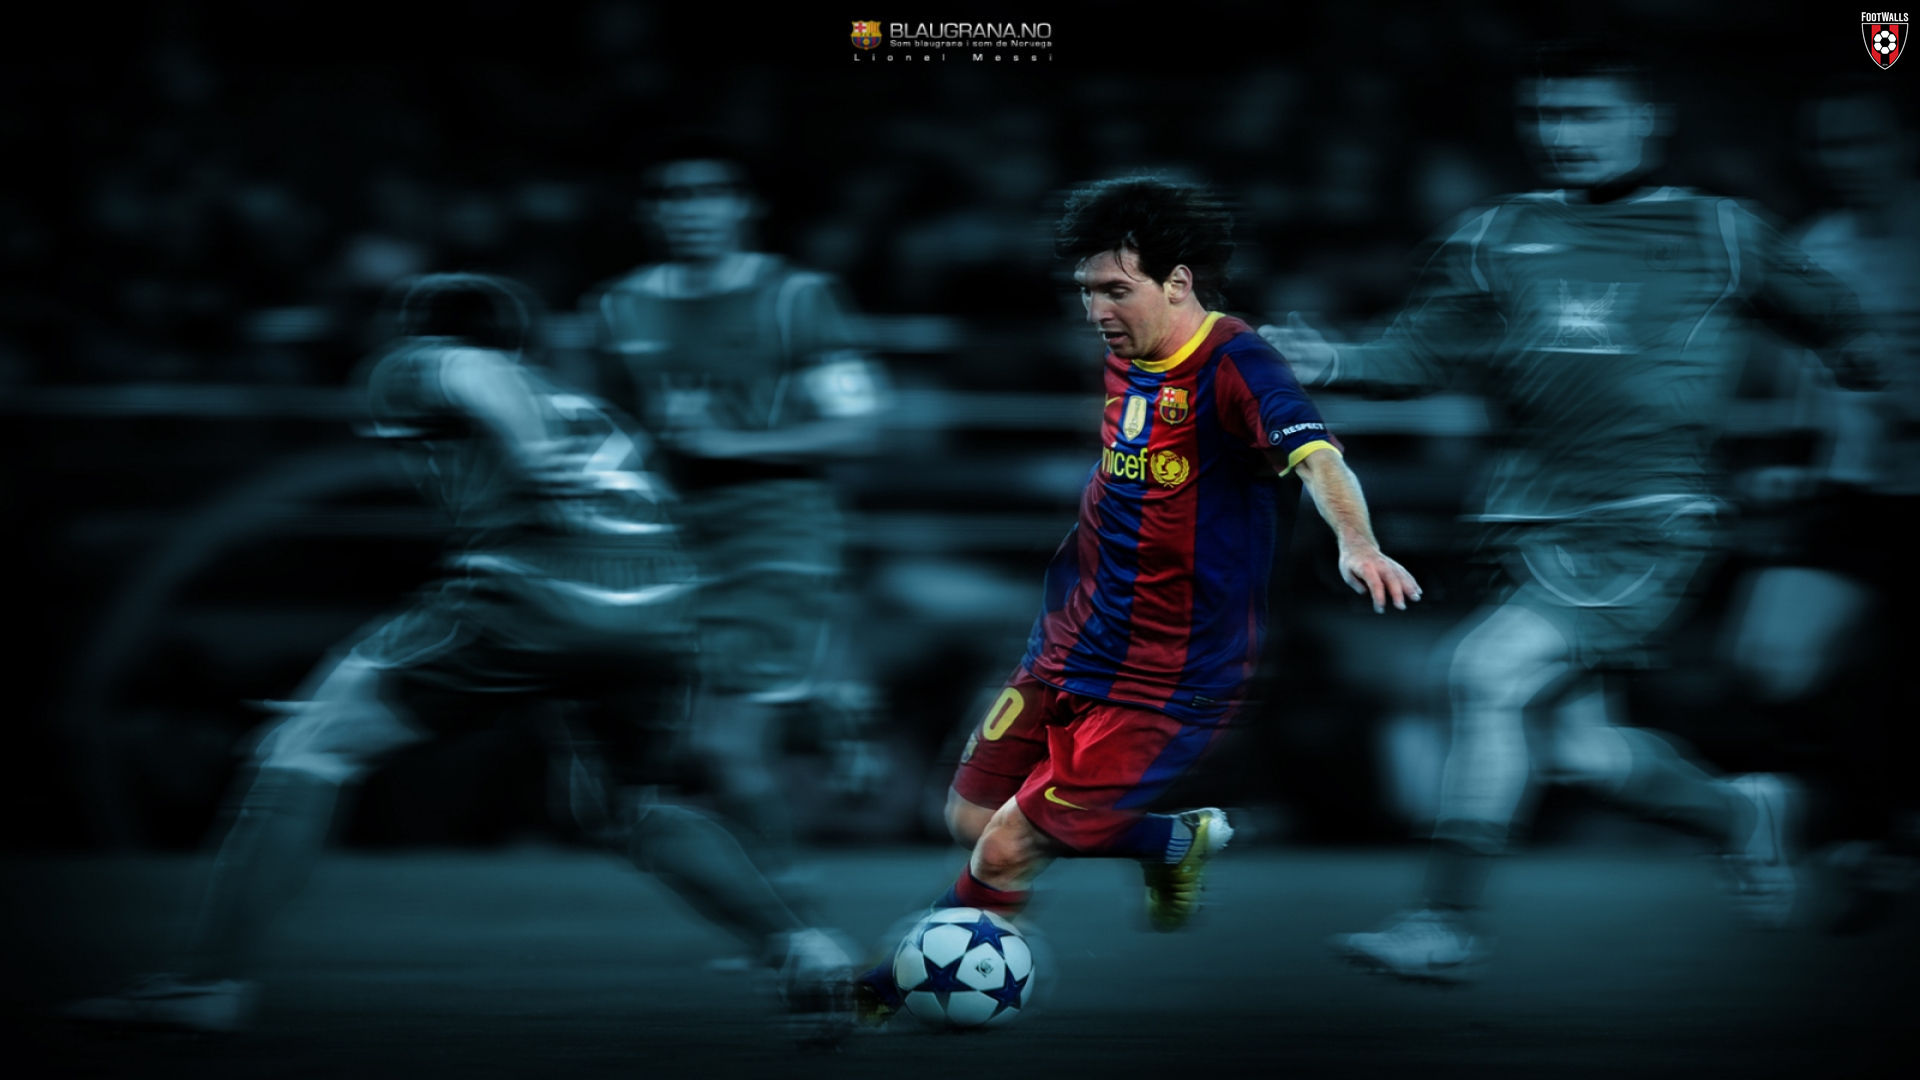 lionel messi wallpapers players football wallpapers